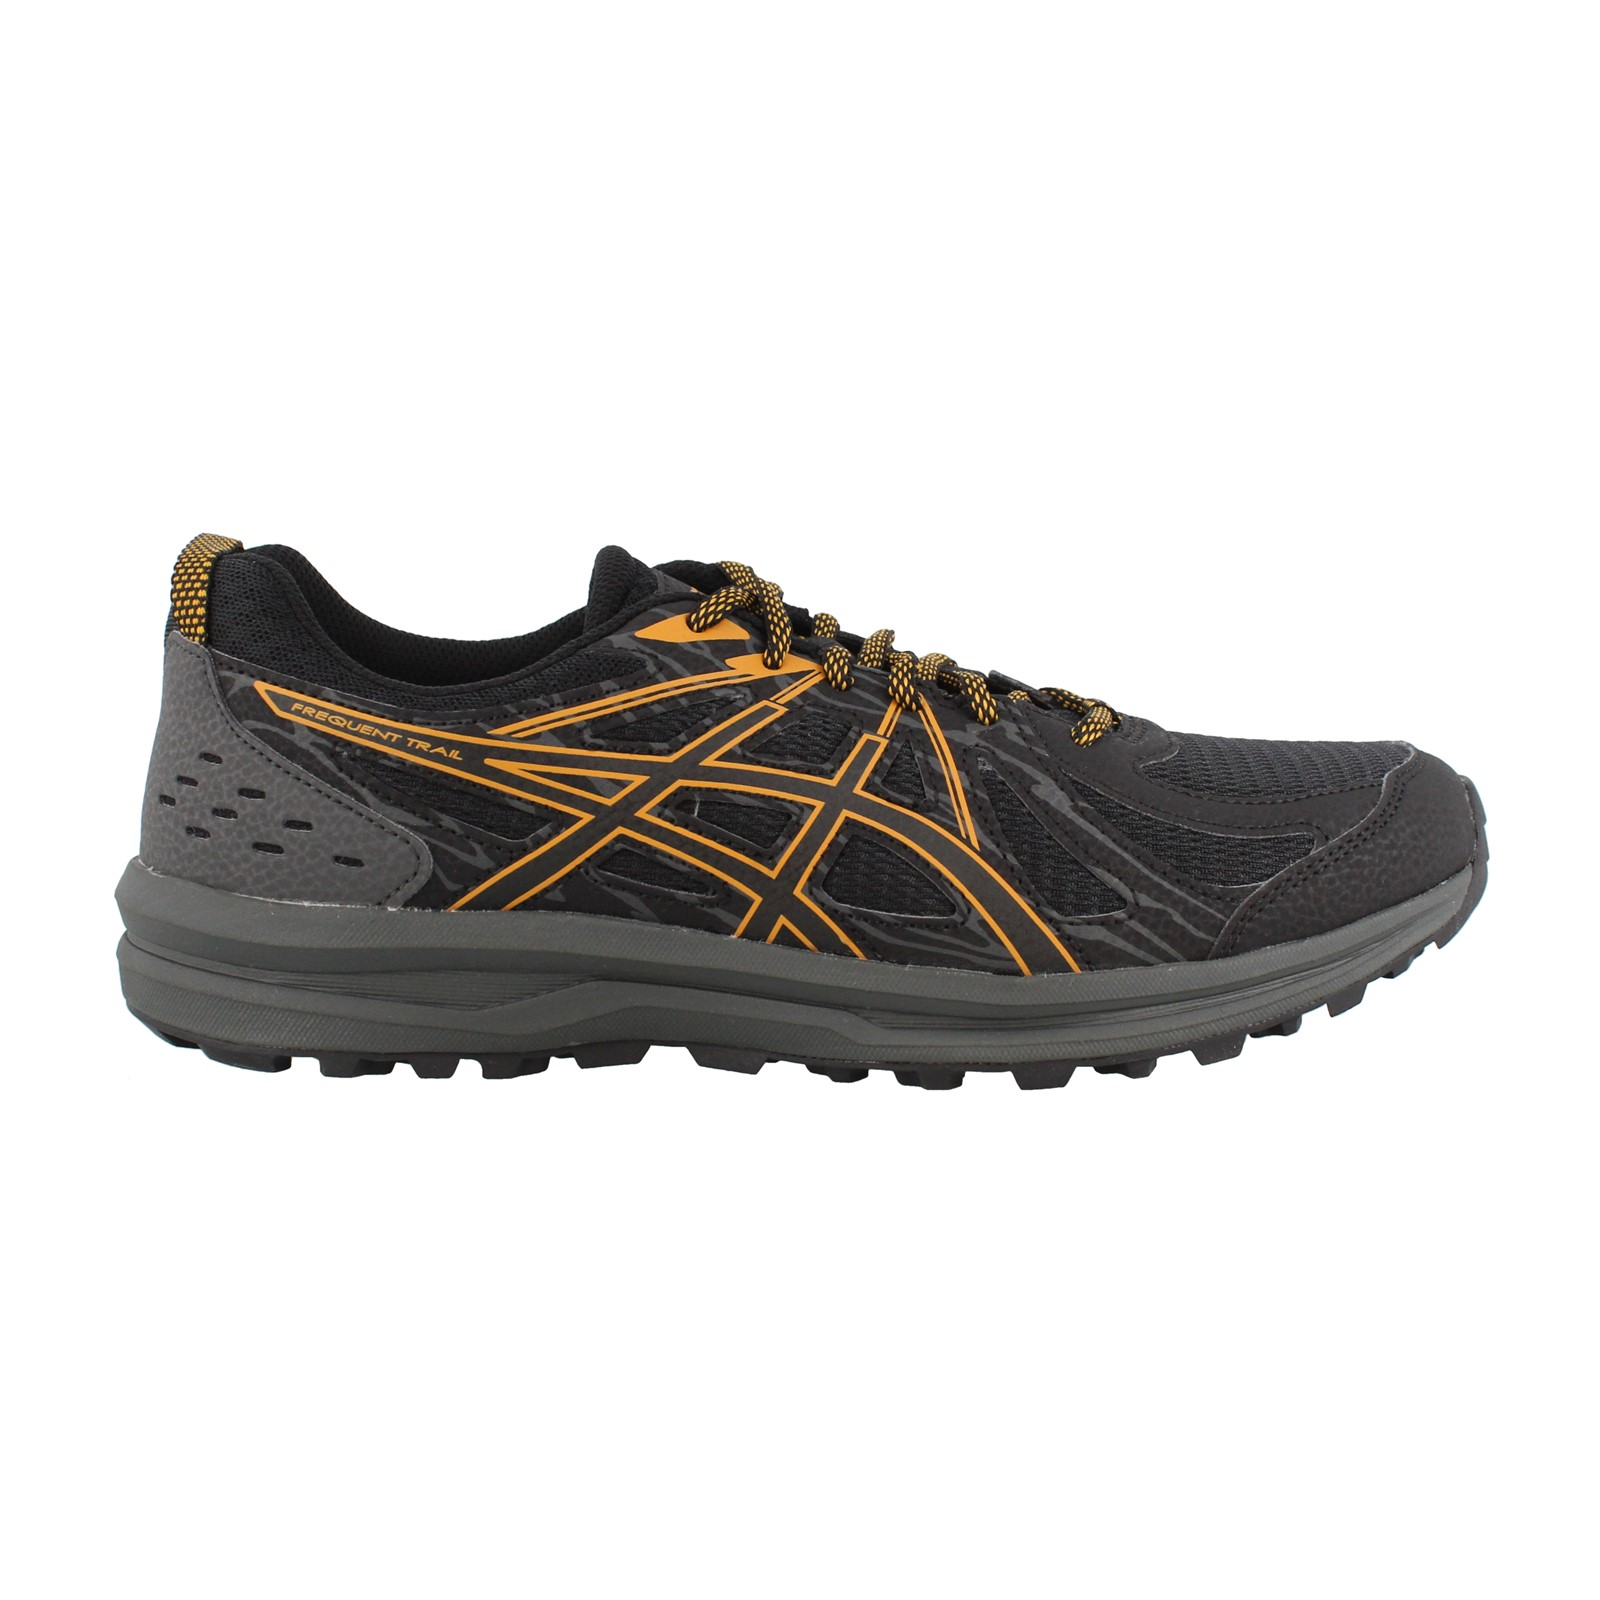 Men's Asics, Frequent Trail Running Sneaker